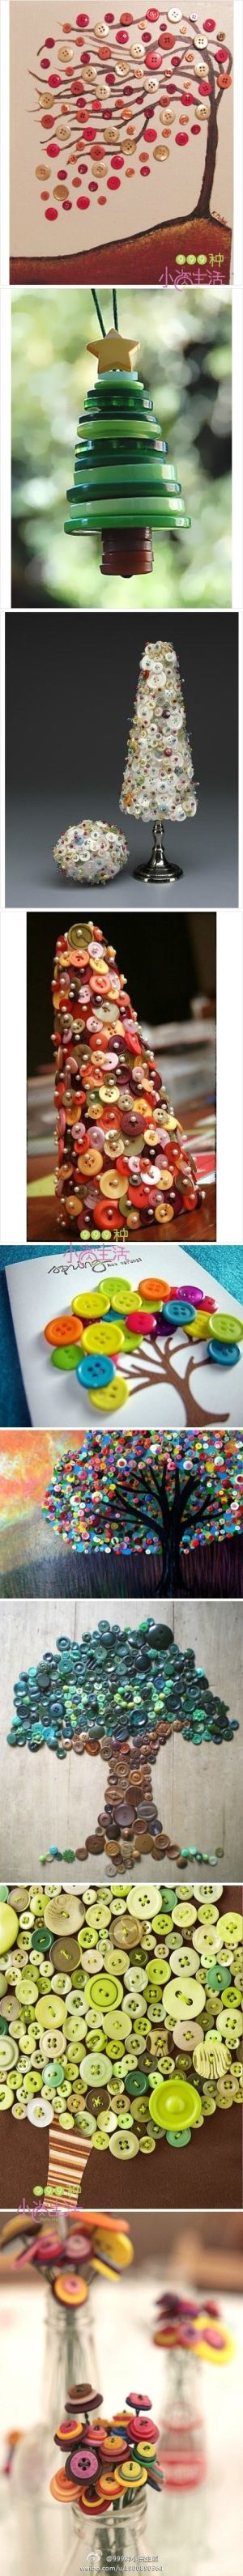 Lots of cute button craft ideas!